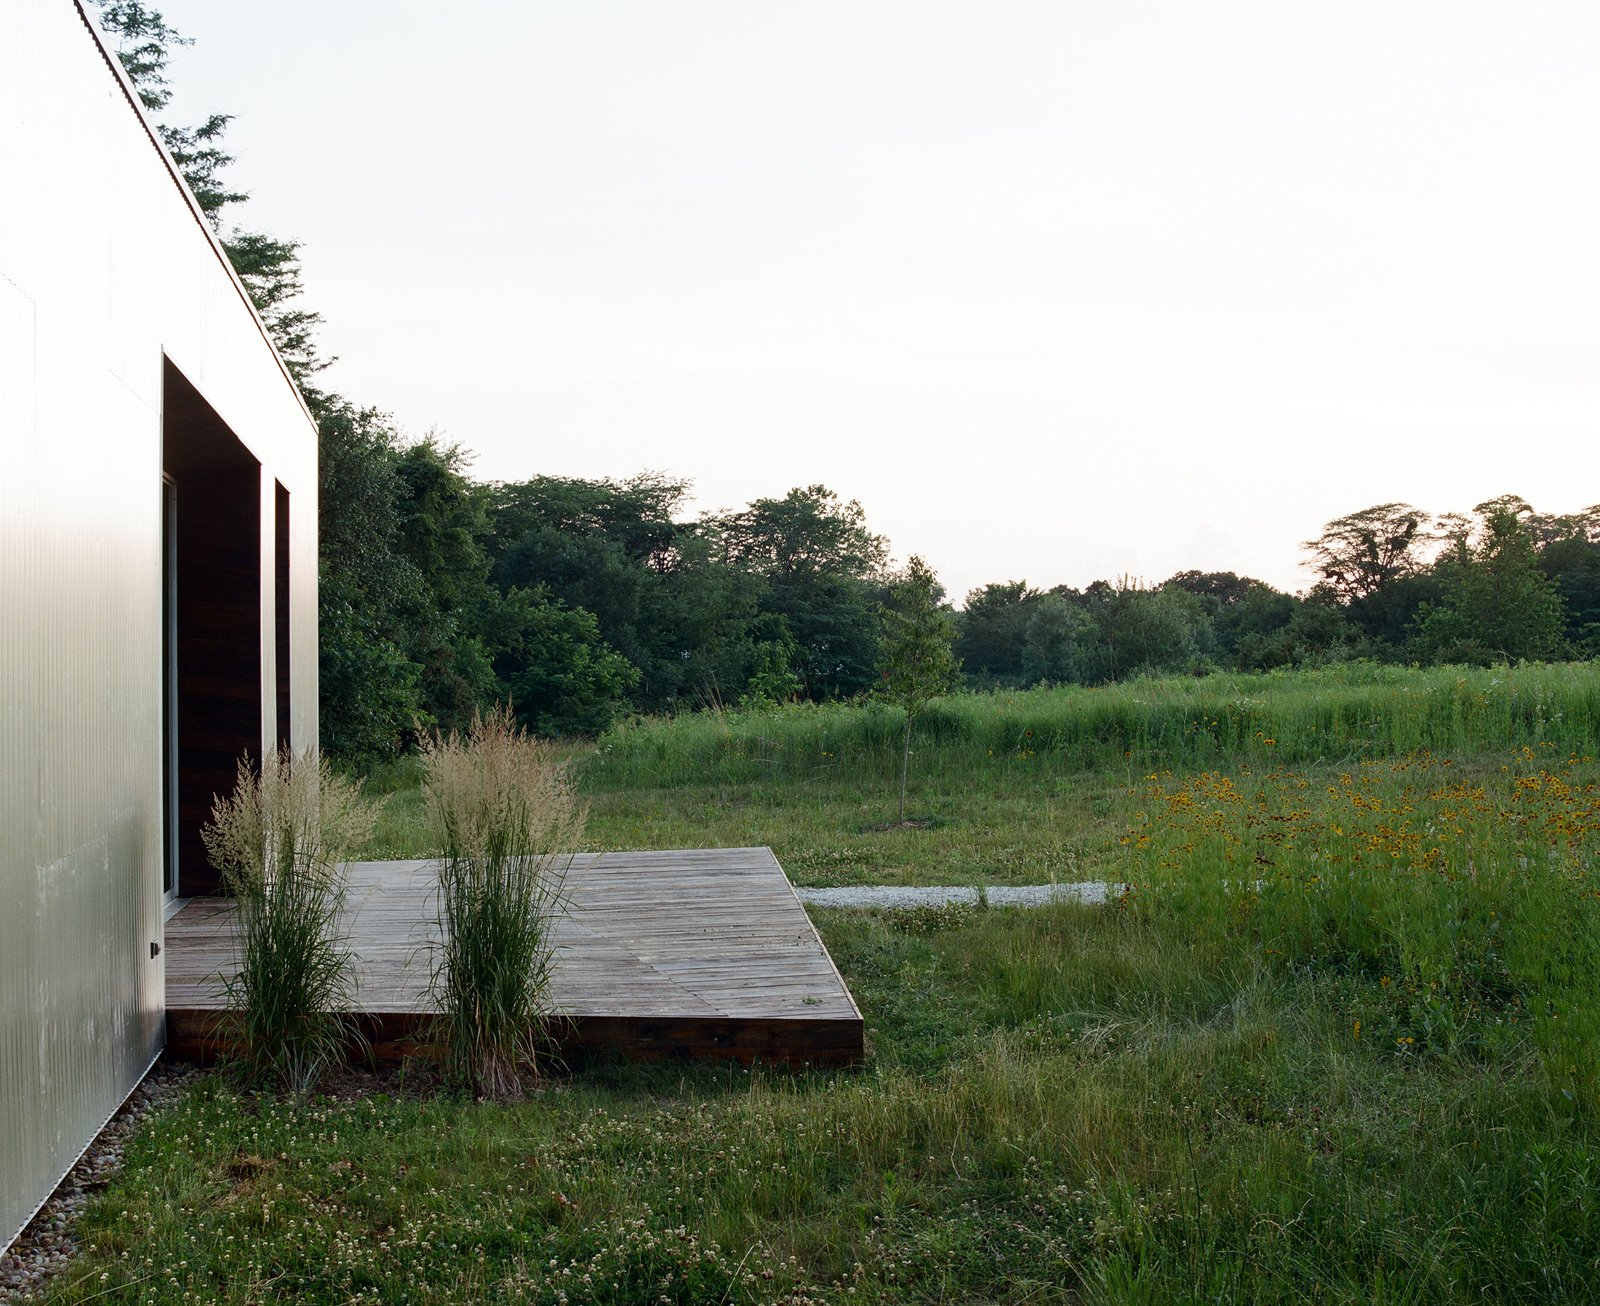 The design for the exterior of the house keeps things super simple—a small deck bridges the door with the grassy meadow, but allows the meadow itself to be the focus of the home's outdoor space. Tagged: Outdoor, Wood Patio, Porch, Deck, and Small Patio, Porch, Deck.  New Grass Roots by Dwell